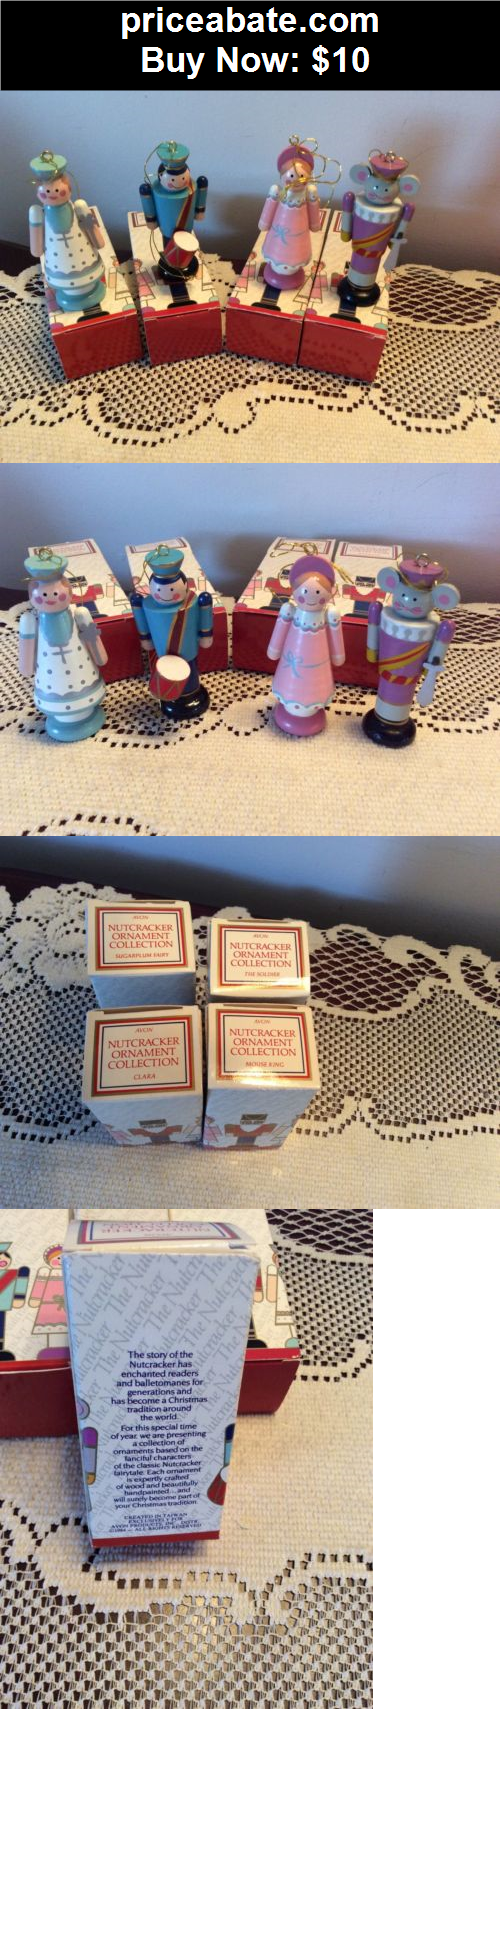 Collectibles: Vintage Avon Nutcracker Ornaments Lot of 4 Christmas w/ Boxes - BUY IT NOW ONLY $10